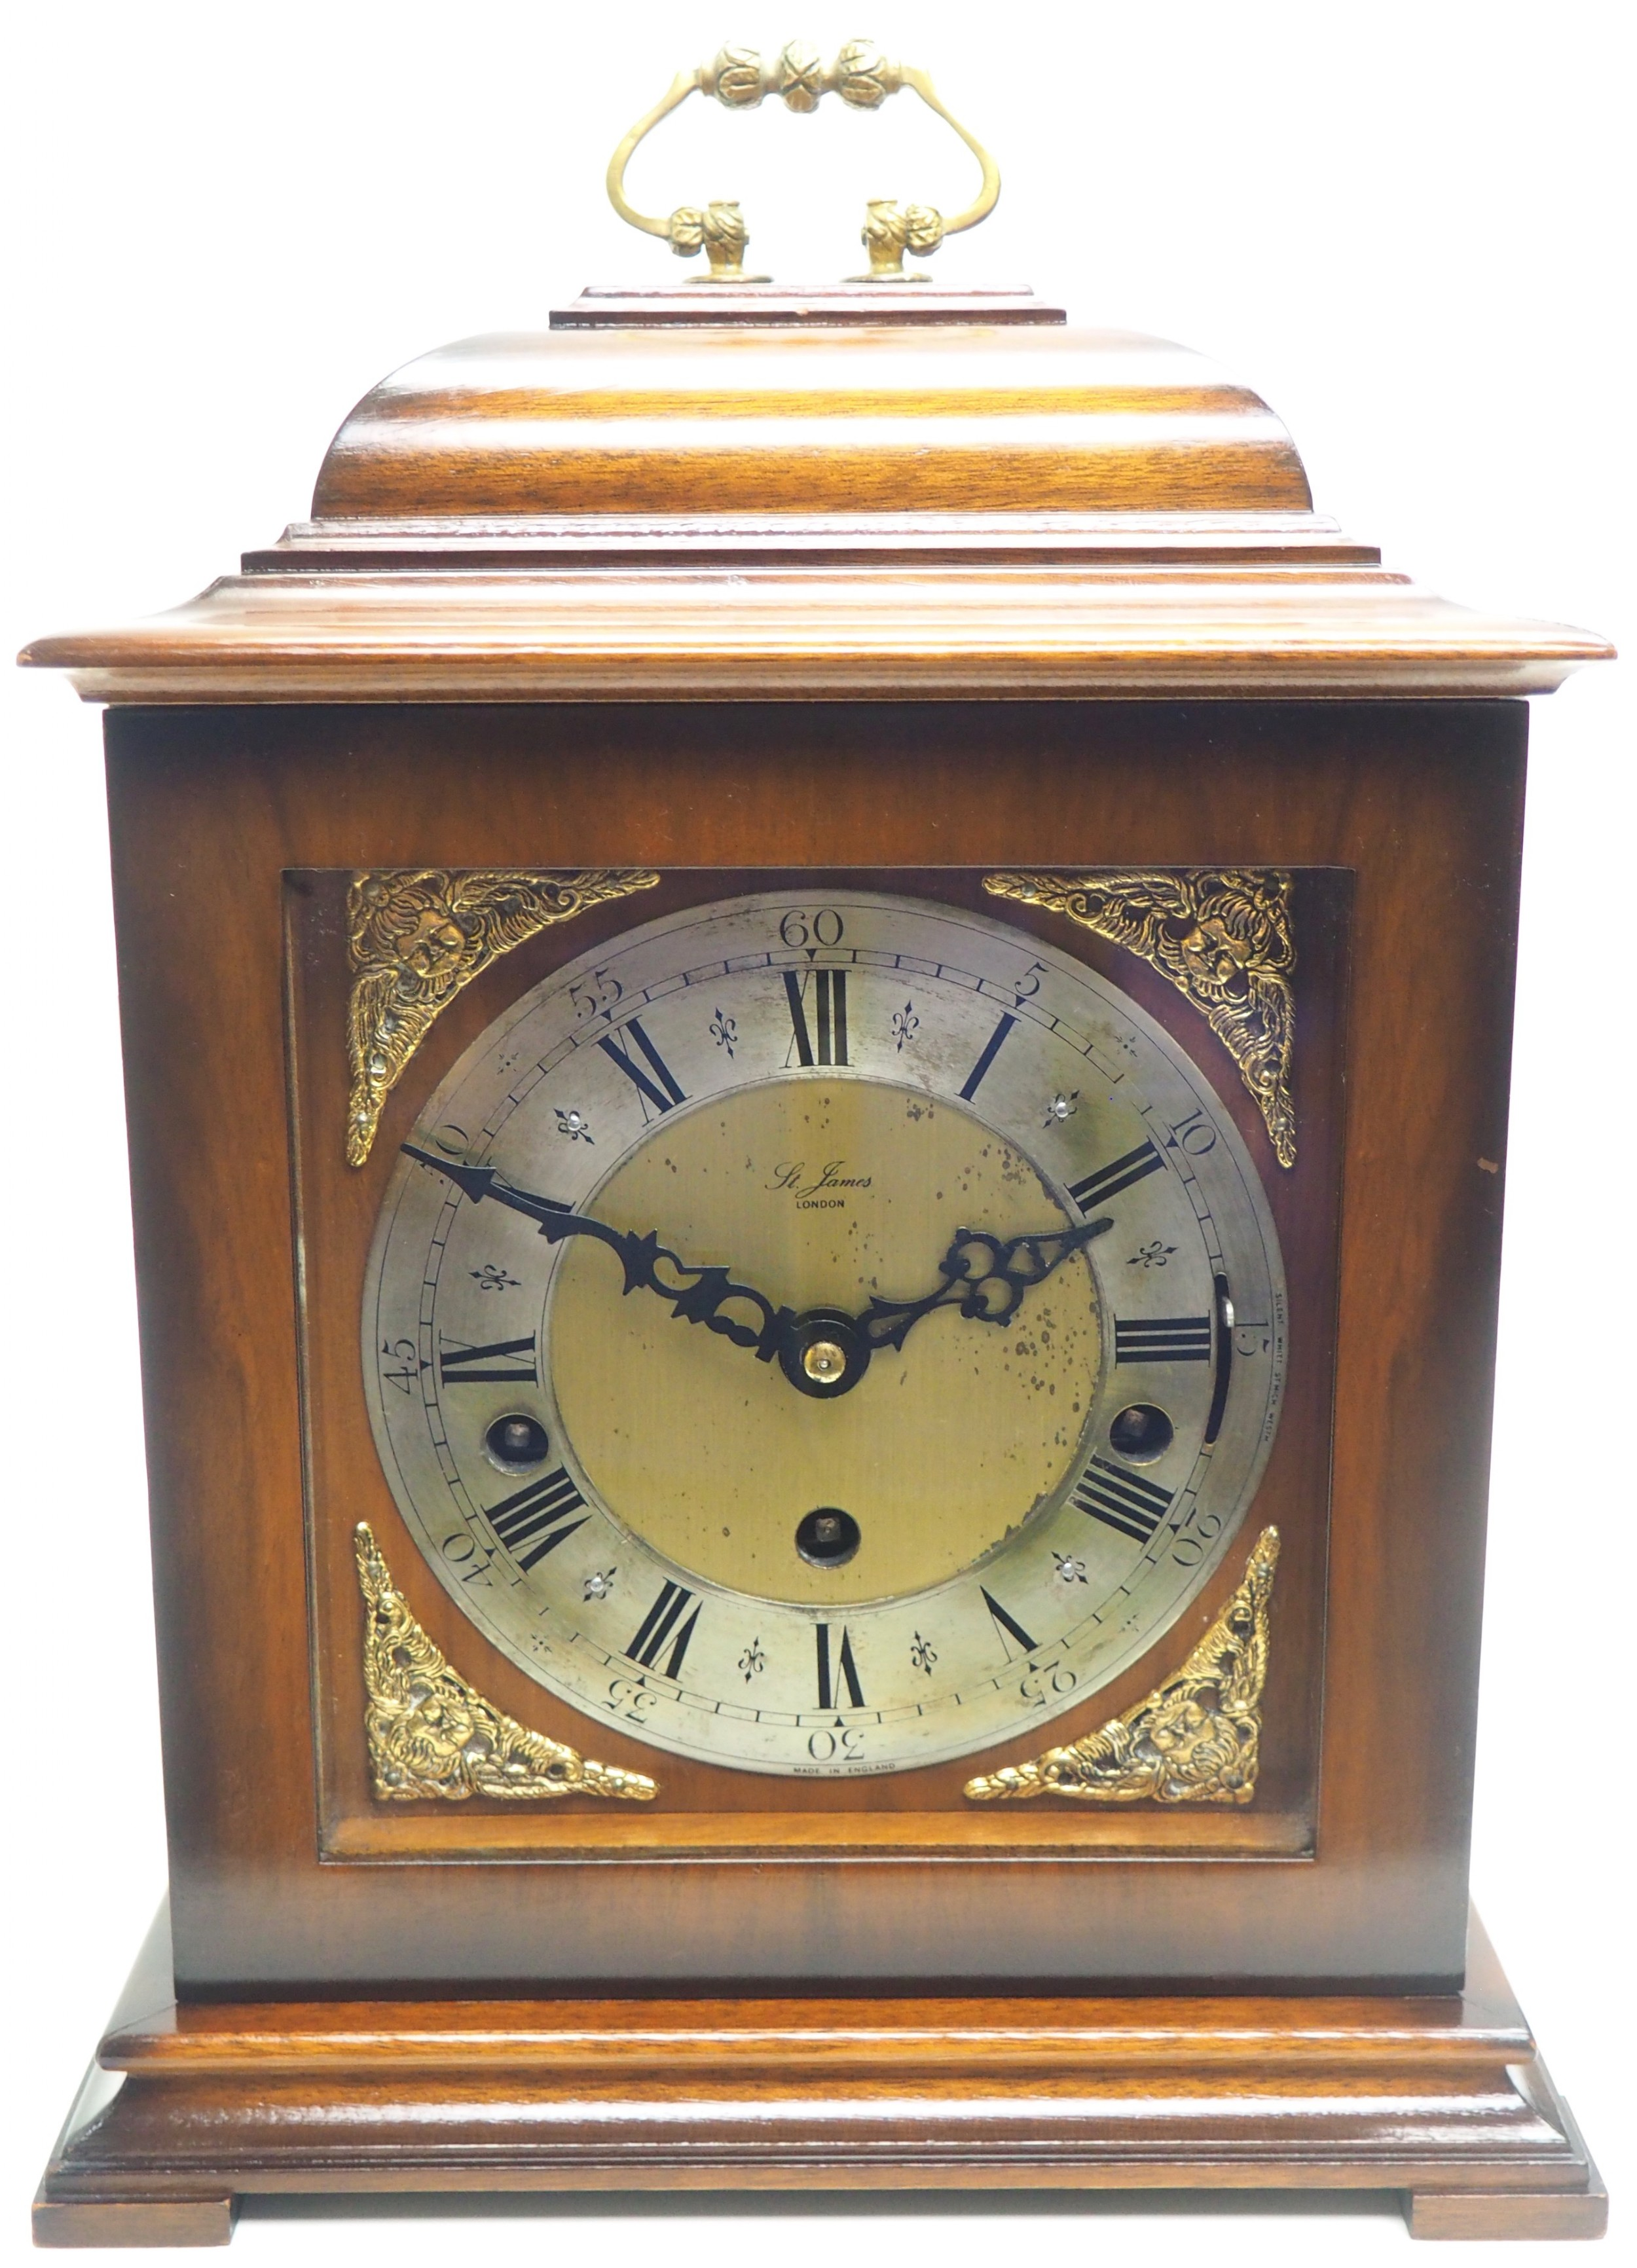 incredible sold mahogany mantel clock westminster chime triple musical bracket clock by st james london